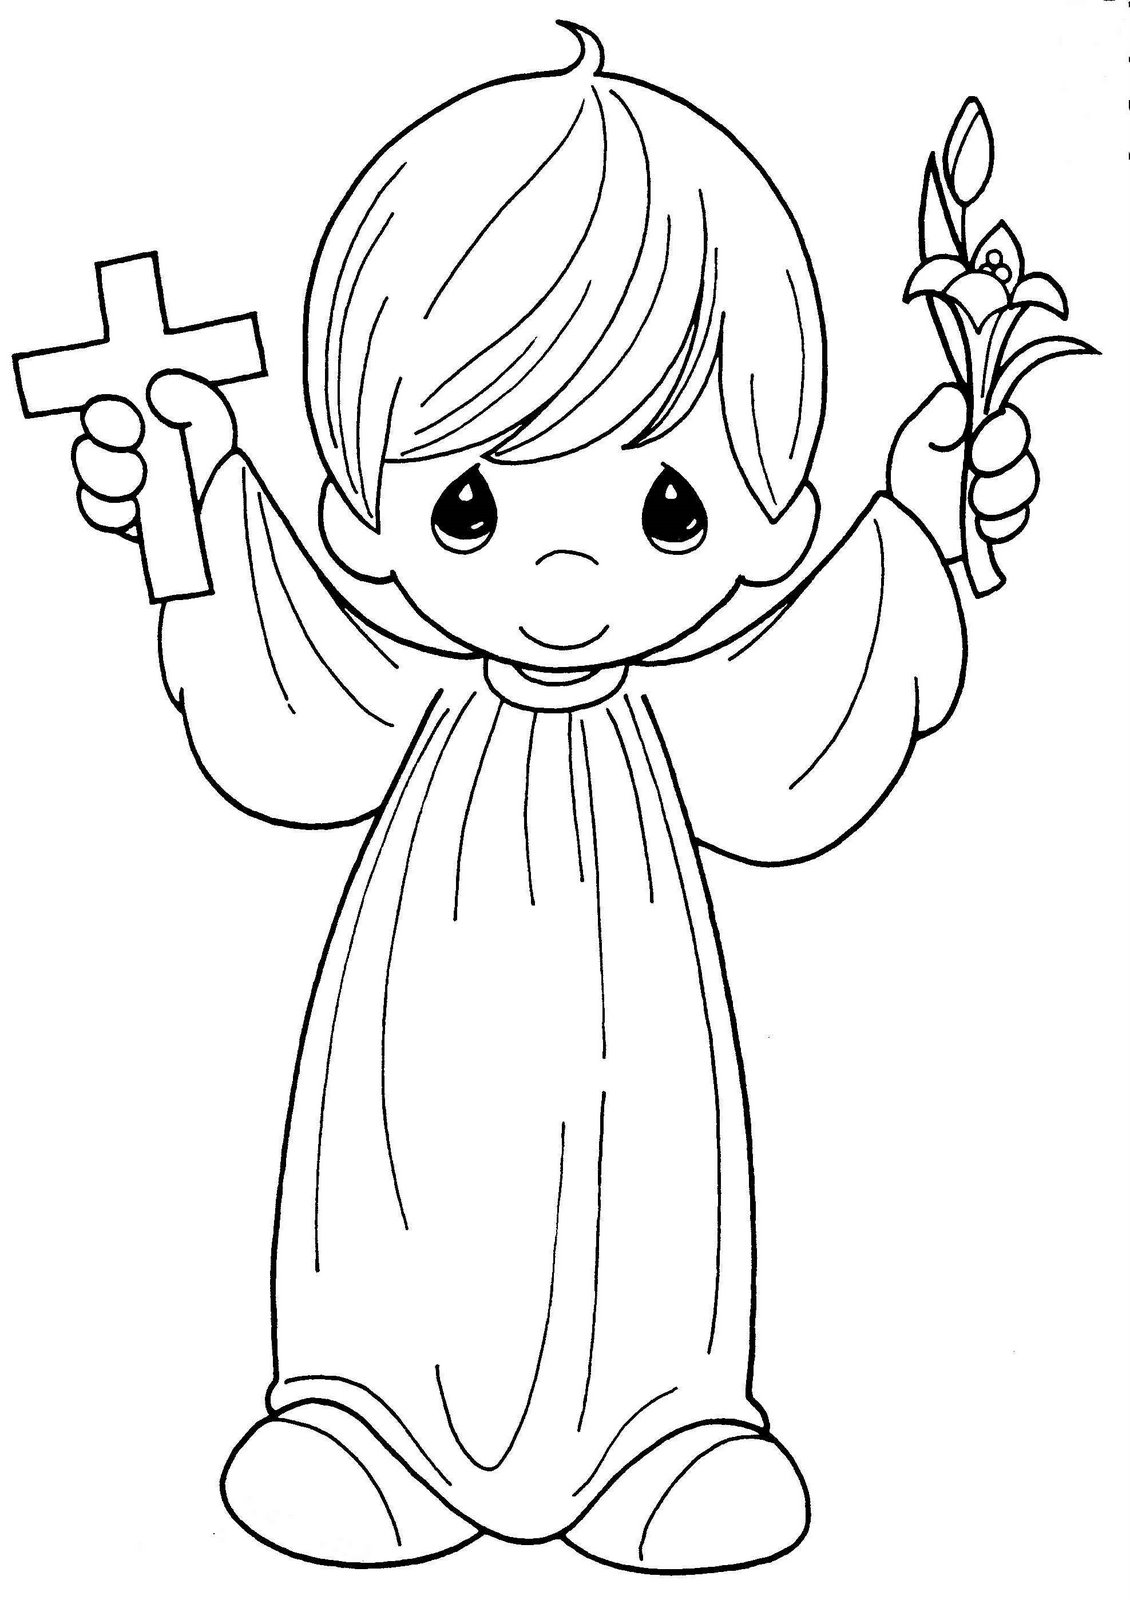 Precious Moments Boy Image For First Communion